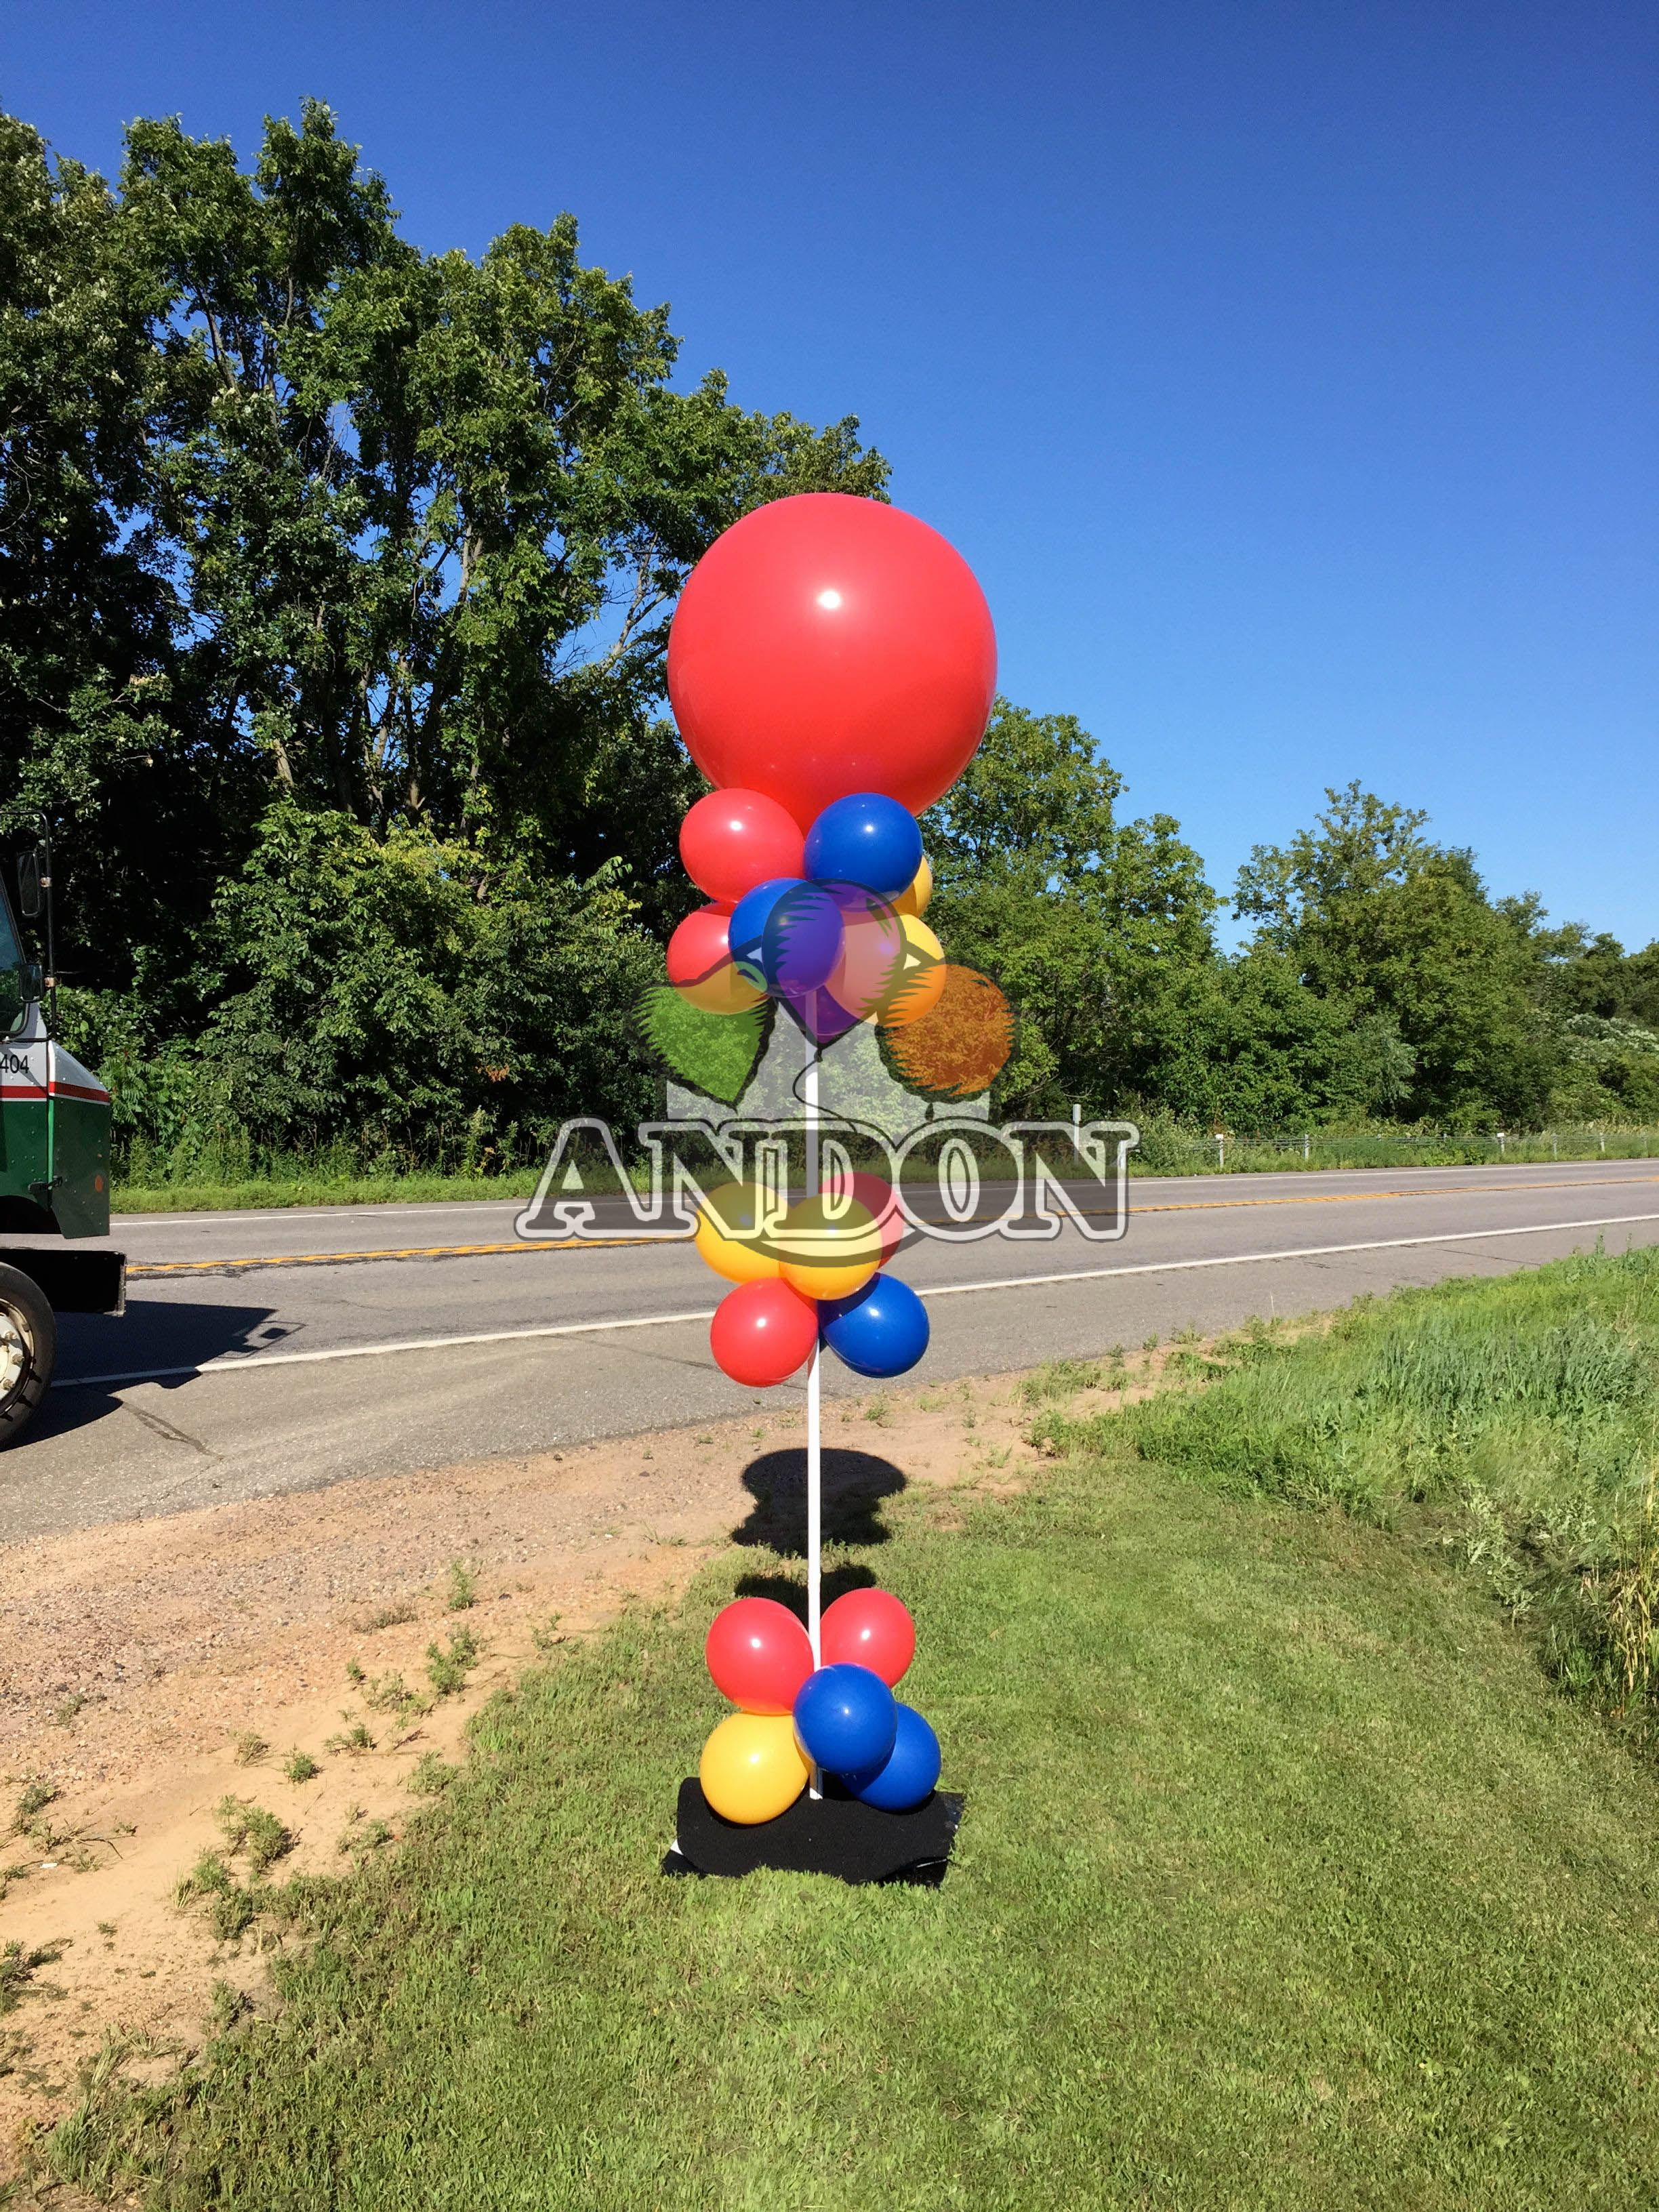 Pin by Andon Balloons & Signs on 3' Balloons (With images